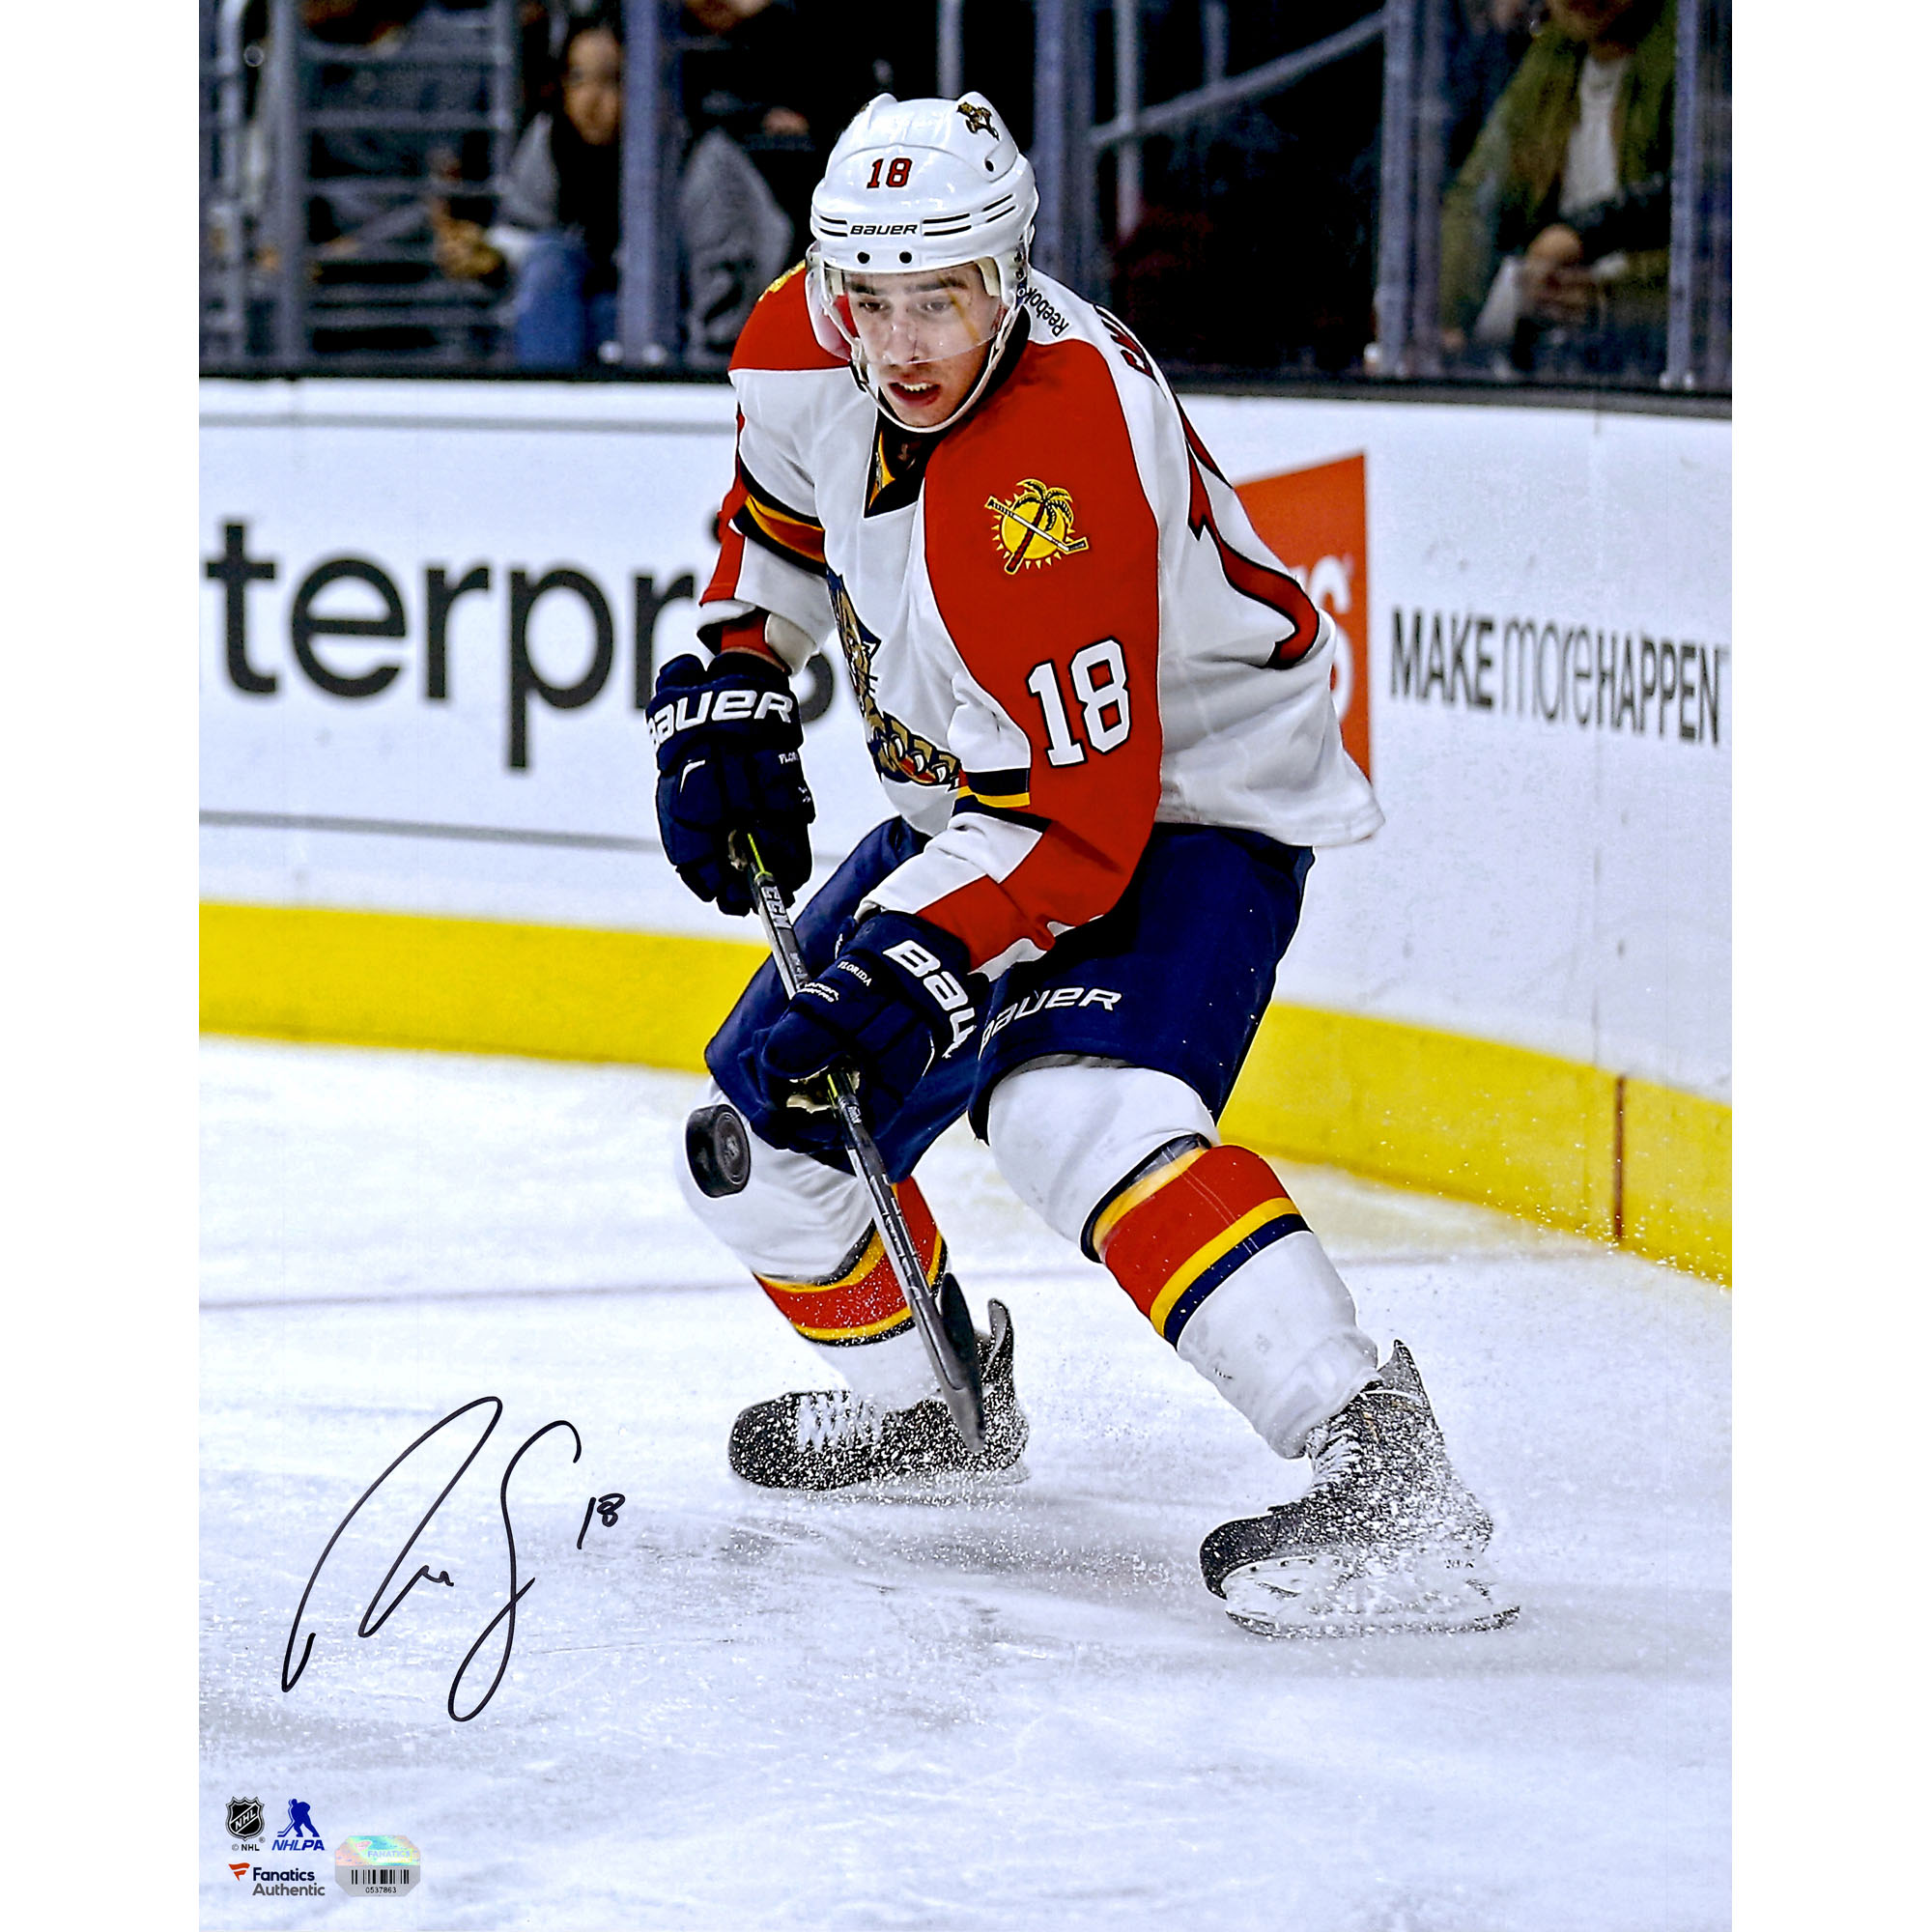 """Reilly Smith Florida Panthers Fanatics Authentic Autographed 16"""" x 20"""" White Jersey Stopping Photograph - No Size"""